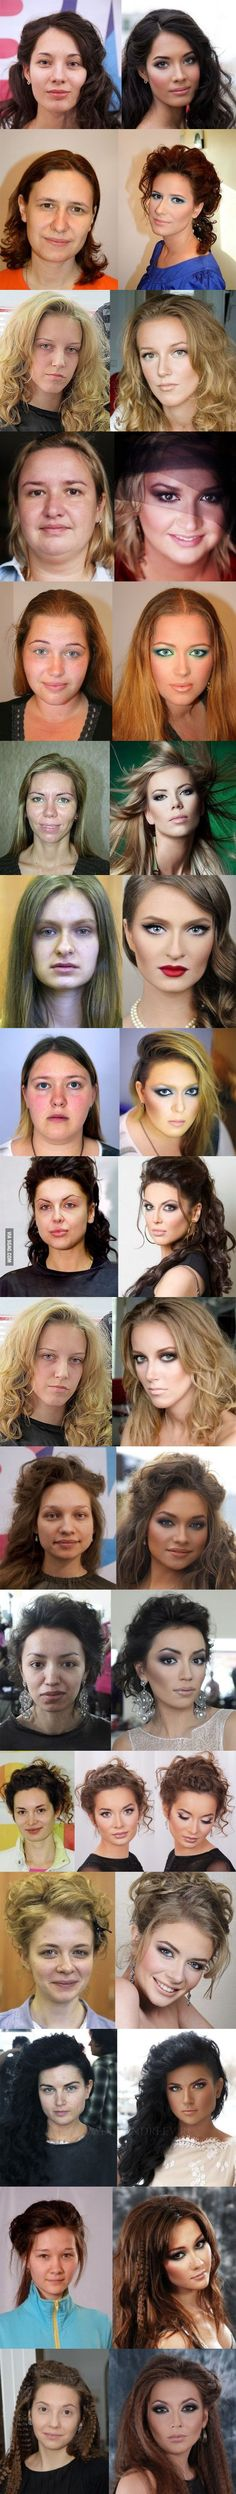 Women with and without makeup-this is almost scary... I can see why guys like chicks better with out make up...